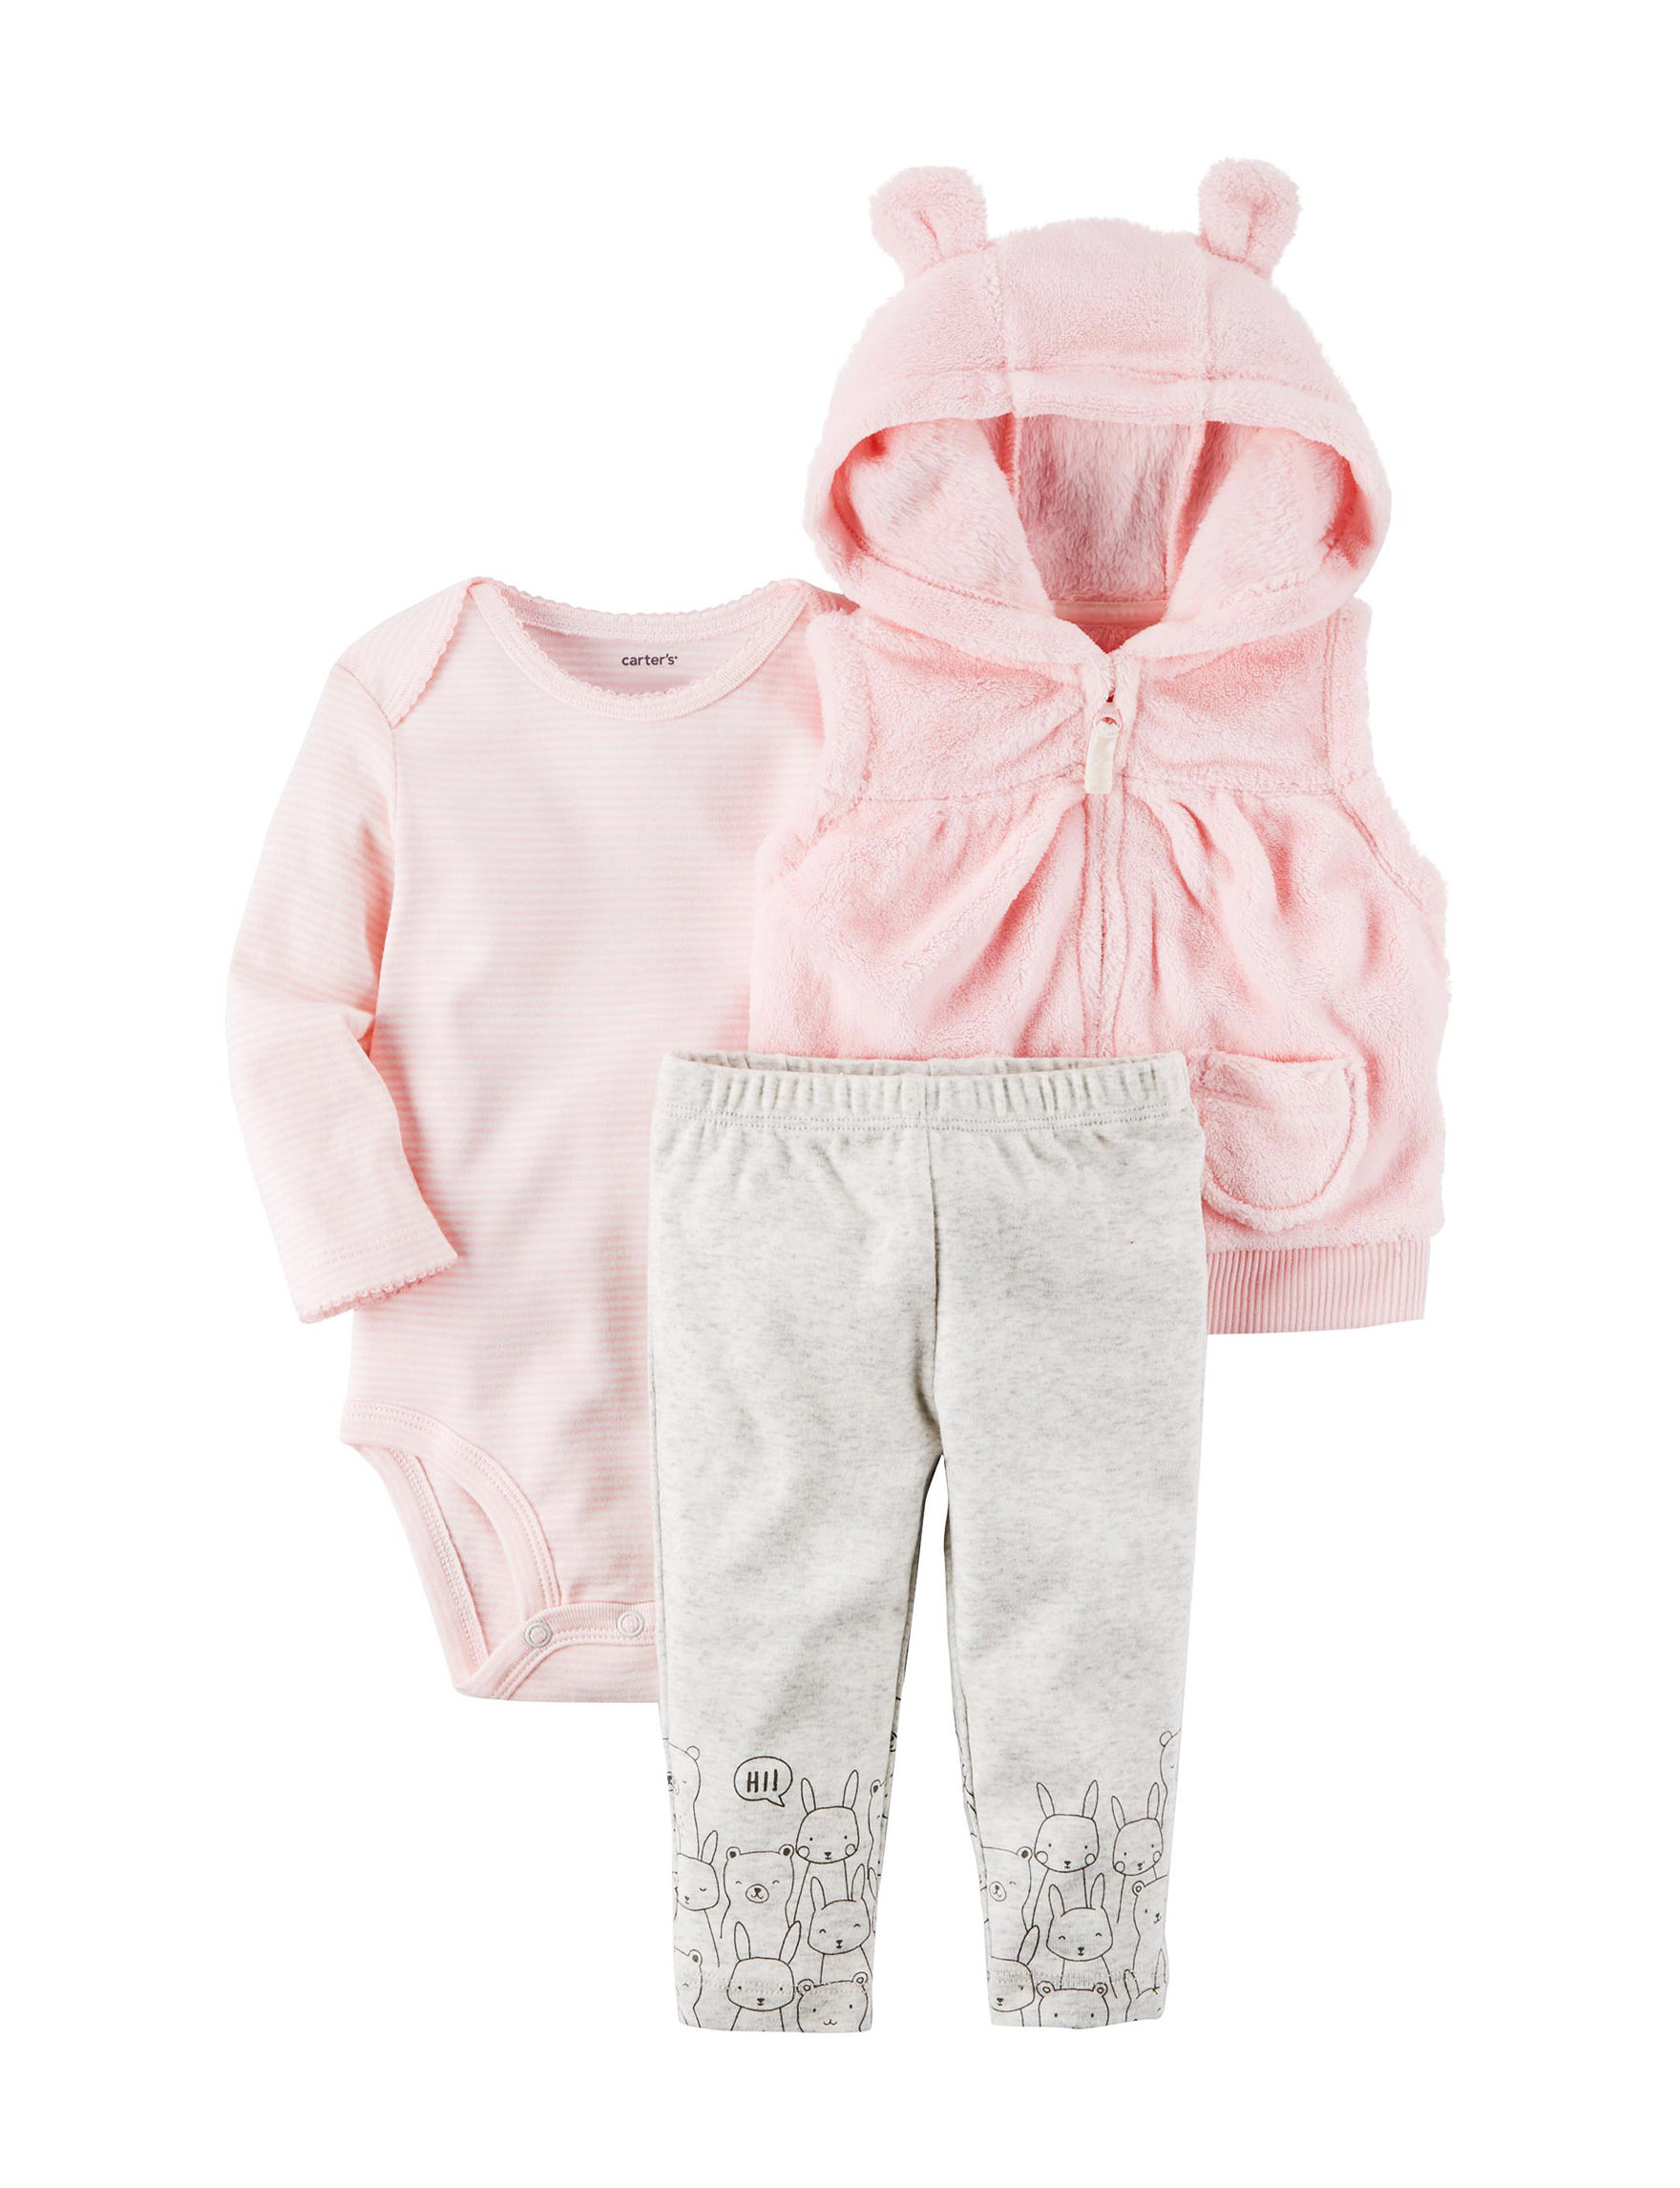 140666bf8 Carter's 3-pc. Hooded Vest & Leggings Set - Baby 3-18 Mos. | Stage ...